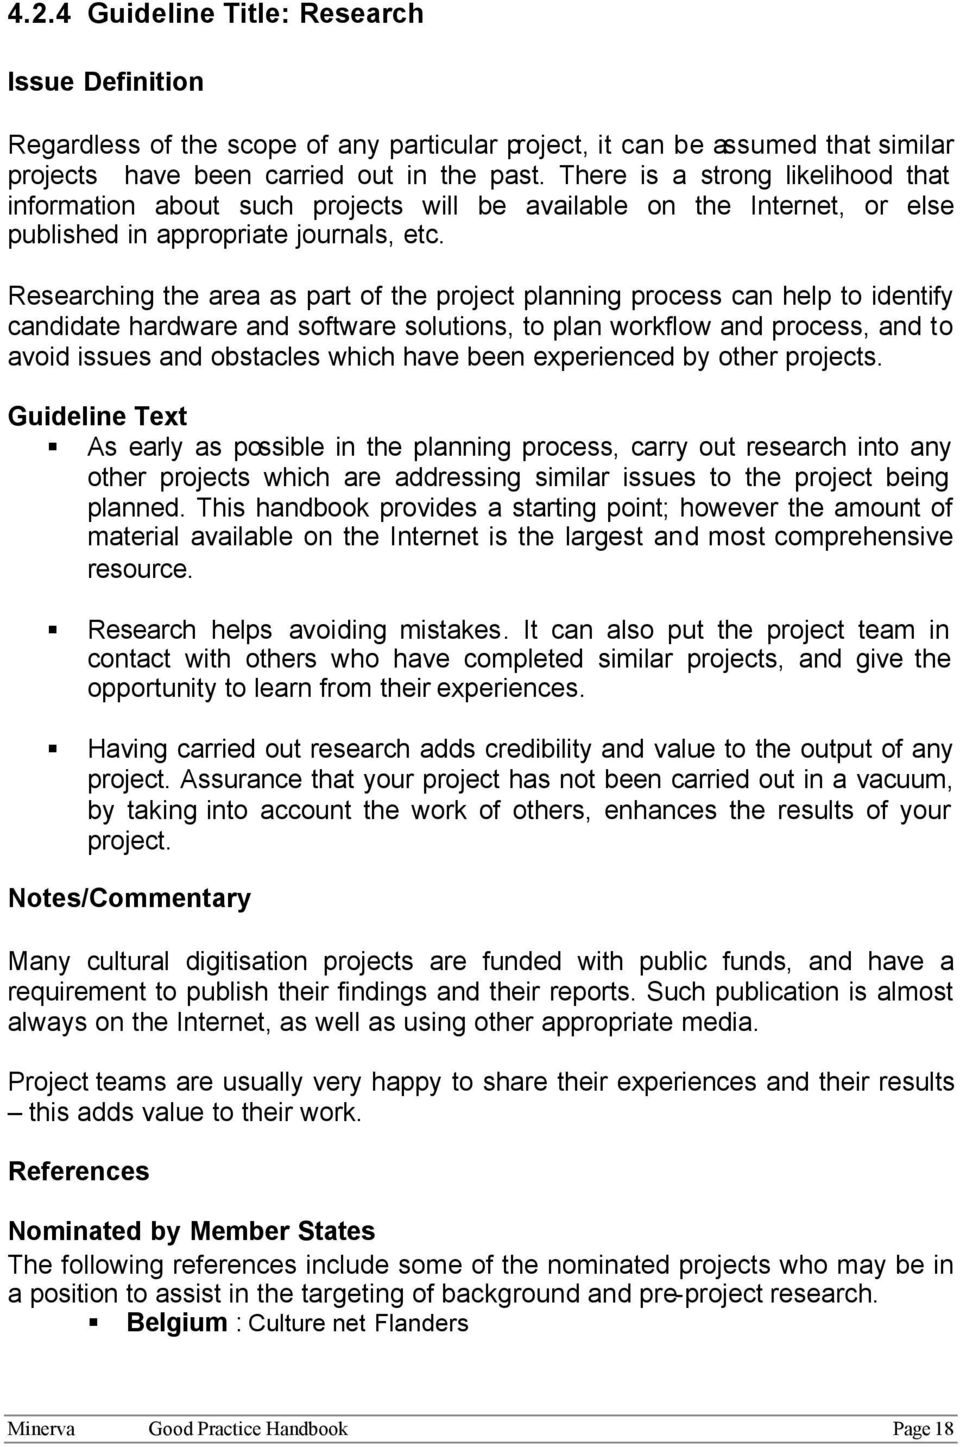 Researching the area as part of the project planning process can help to identify candidate hardware and software solutions, to plan workflow and process, and to avoid issues and obstacles which have